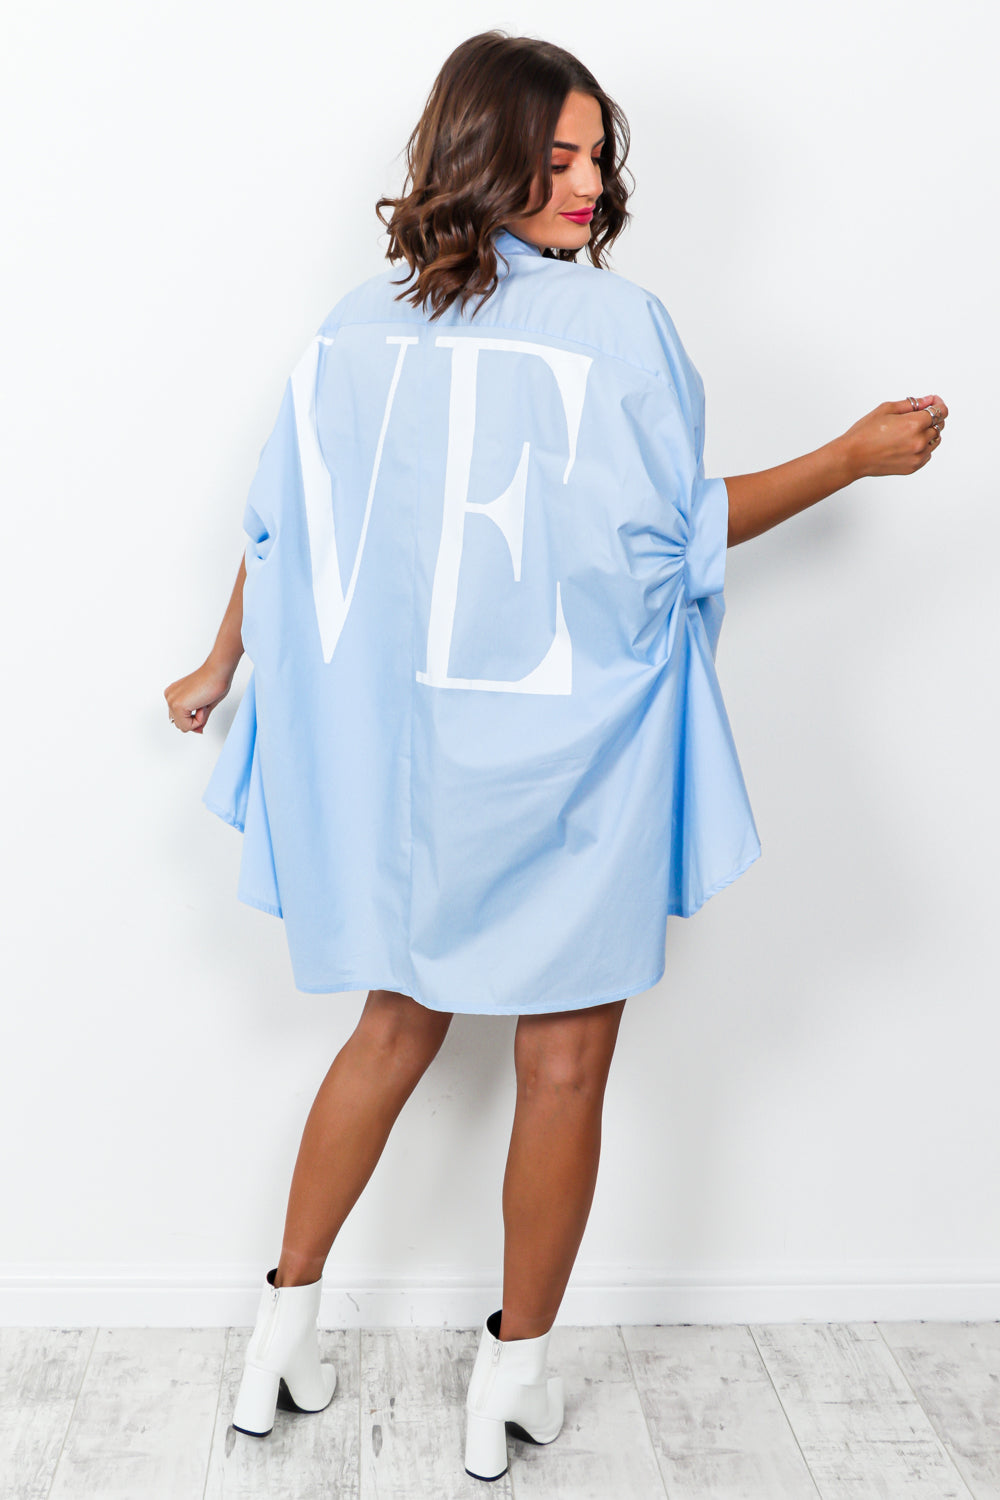 Spread The Love - Shirt Dress In BLUE